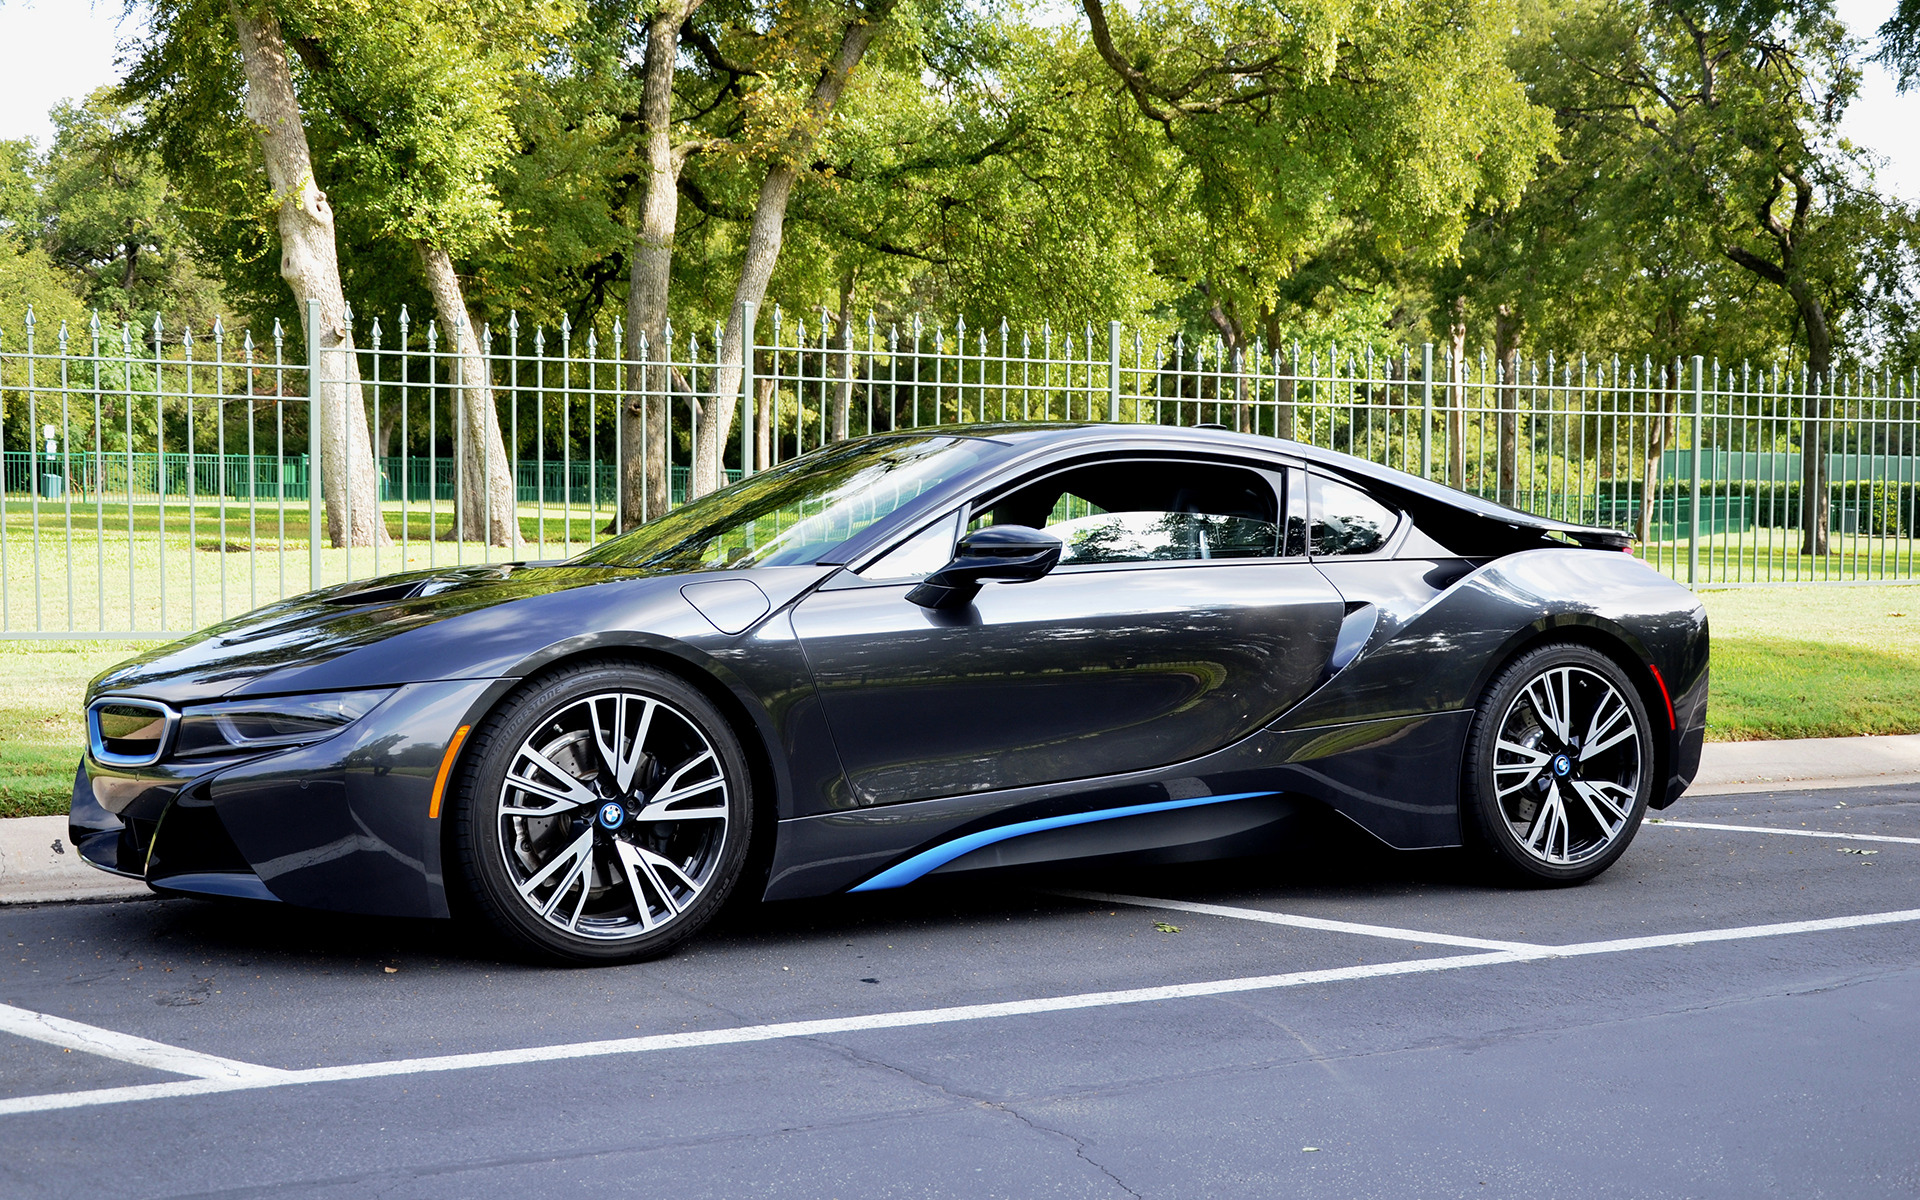 2015 bmw i8 stock 116995 for sale near dallas tx tx bmw dealer for sale in dallas tx. Black Bedroom Furniture Sets. Home Design Ideas